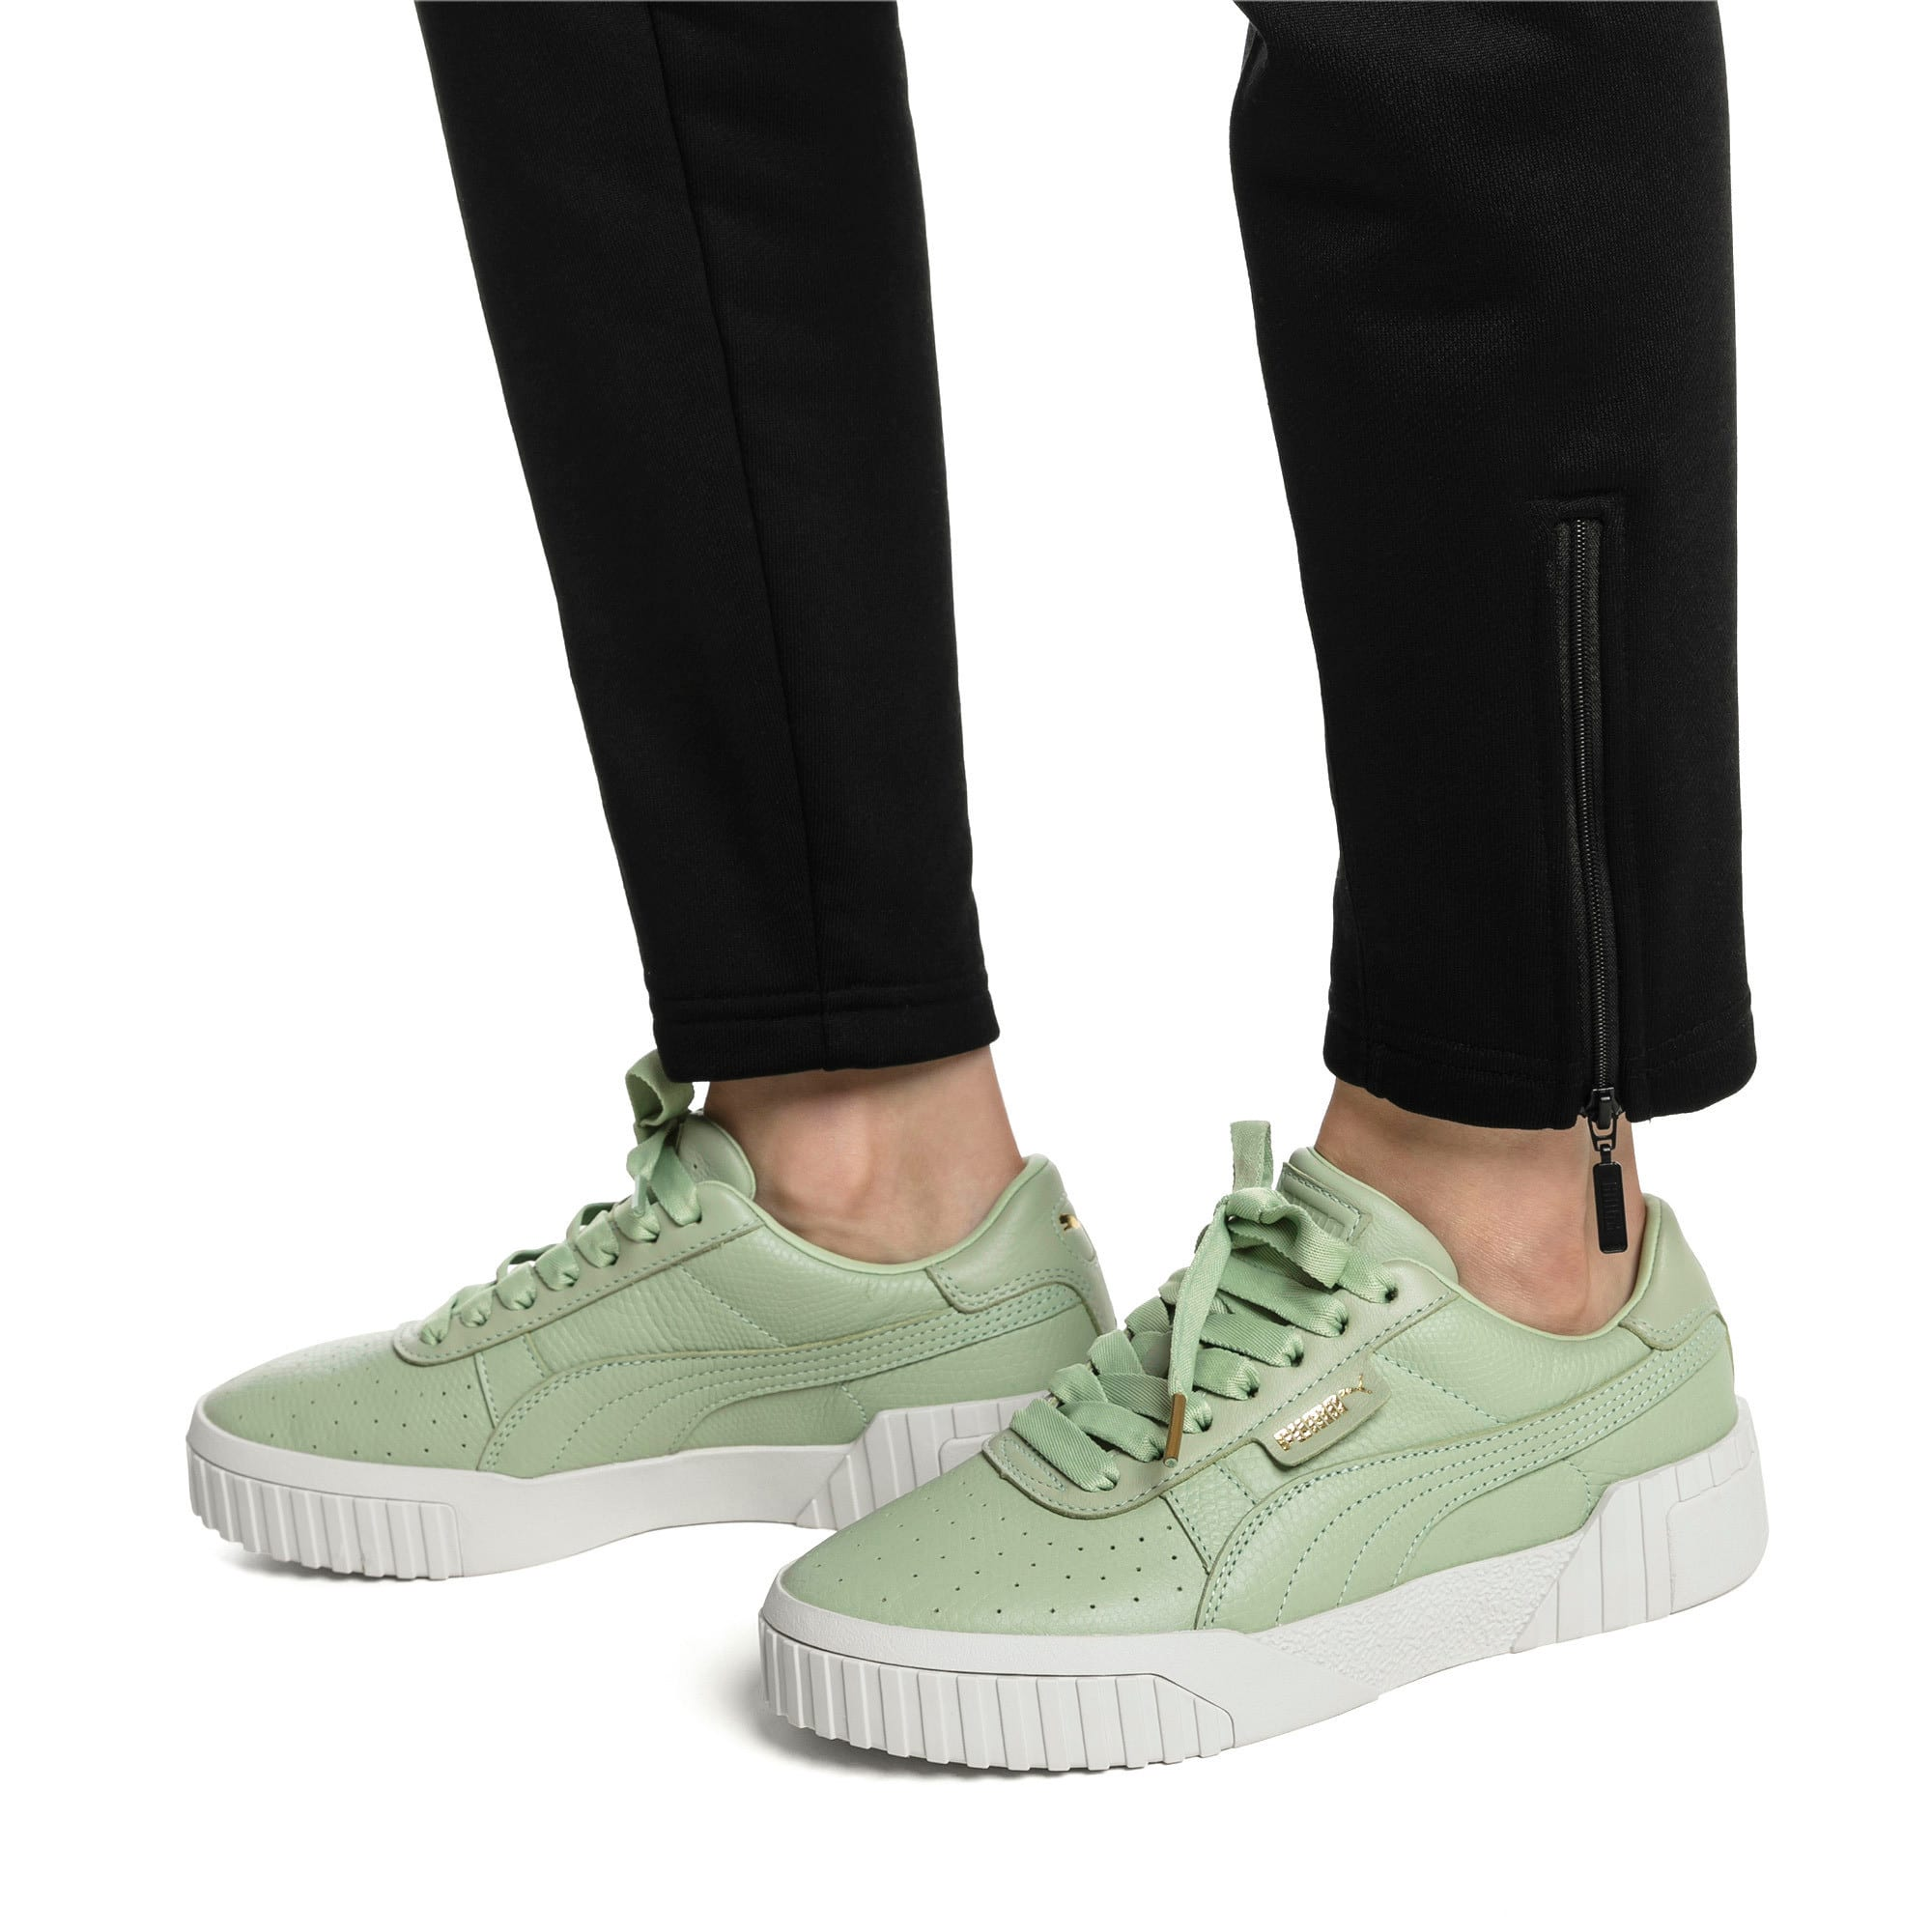 Thumbnail 2 of Cali Emboss Women's Trainers, Smoke Green-Smoke Green, medium